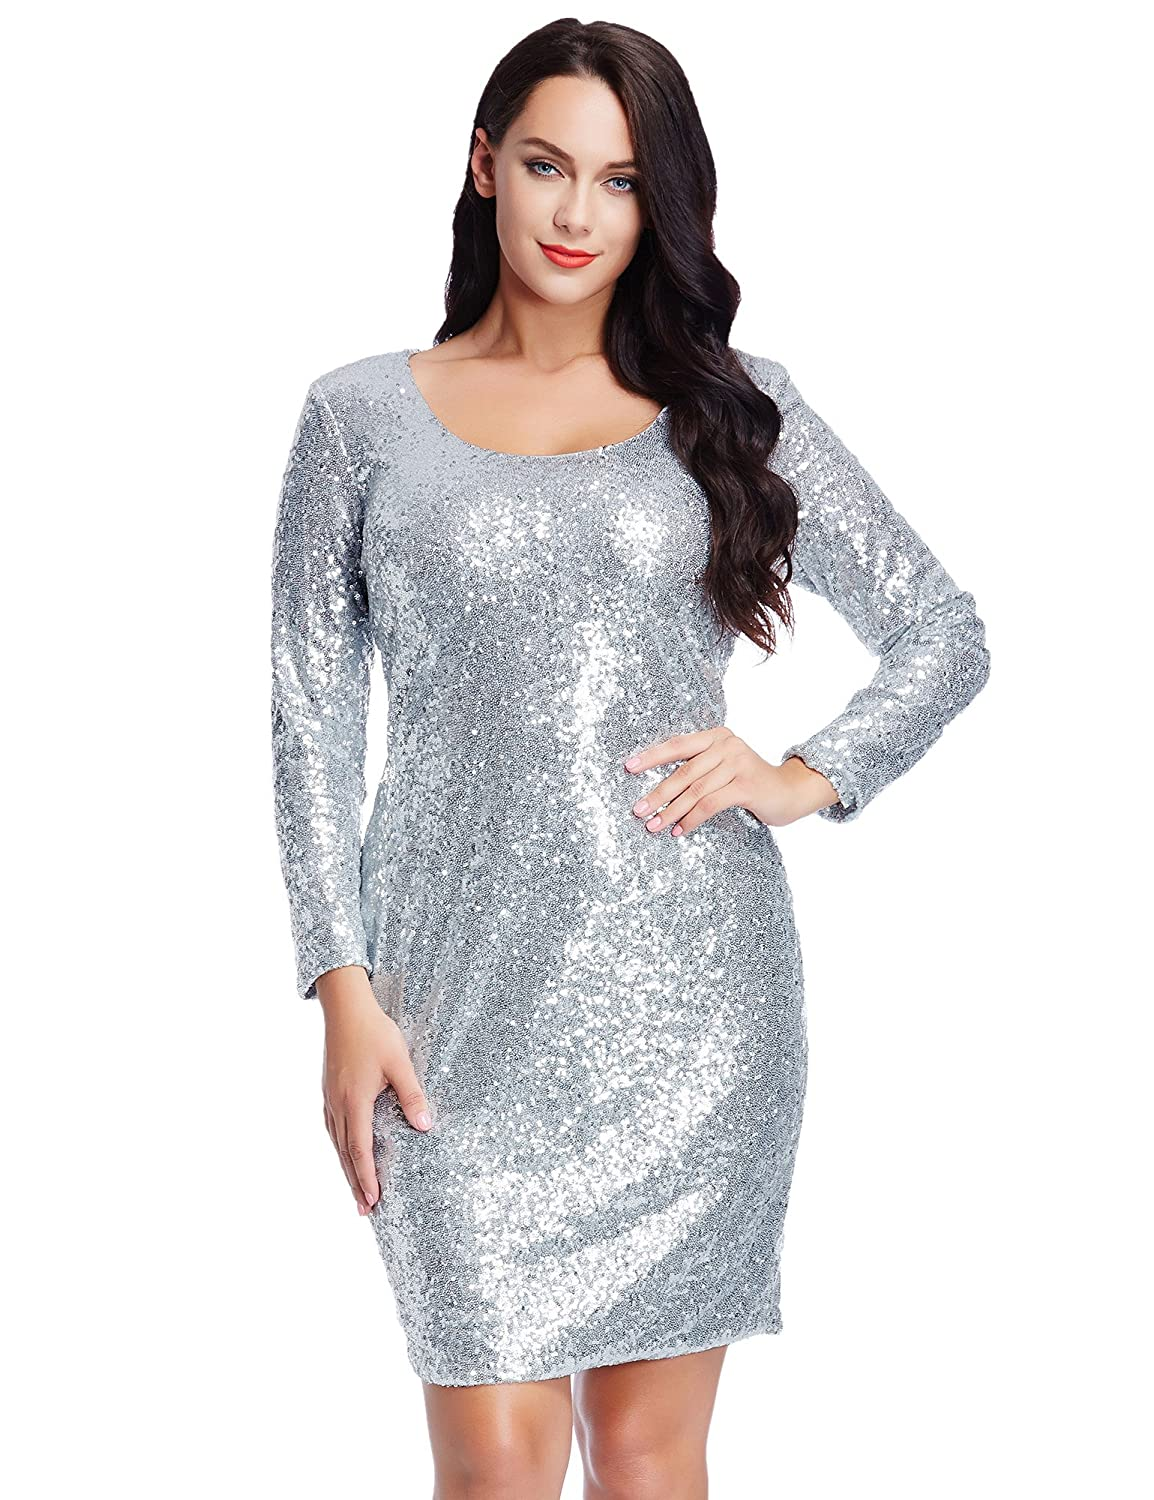 blossil Womens Plus Size Cocktail Sequin Casual Sheath Bodycon Short ...